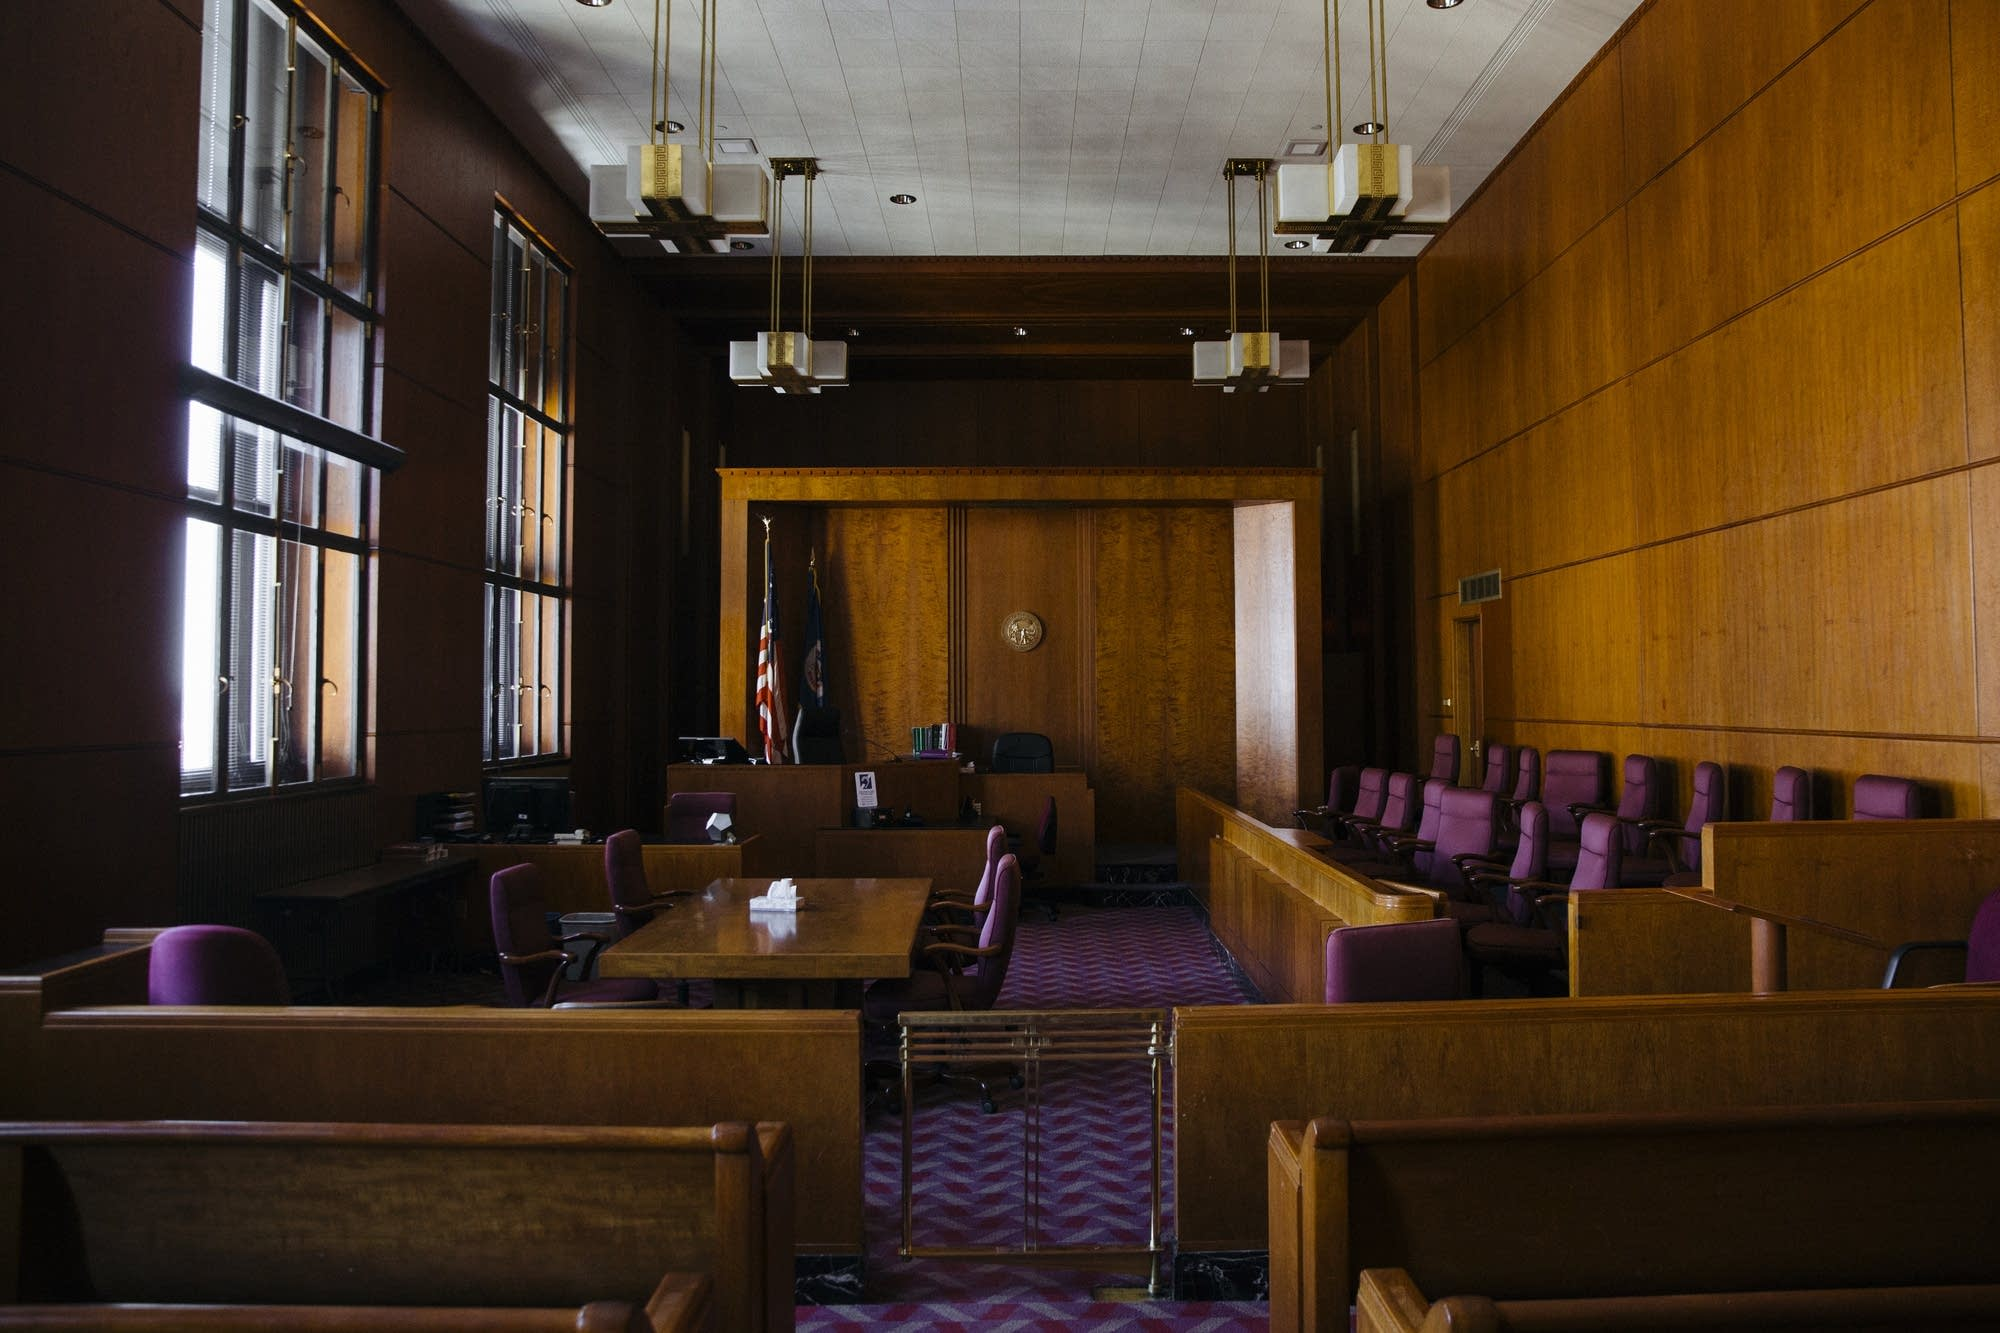 Courtroom 880 sits empty inside the Ramsey County Courthouse.